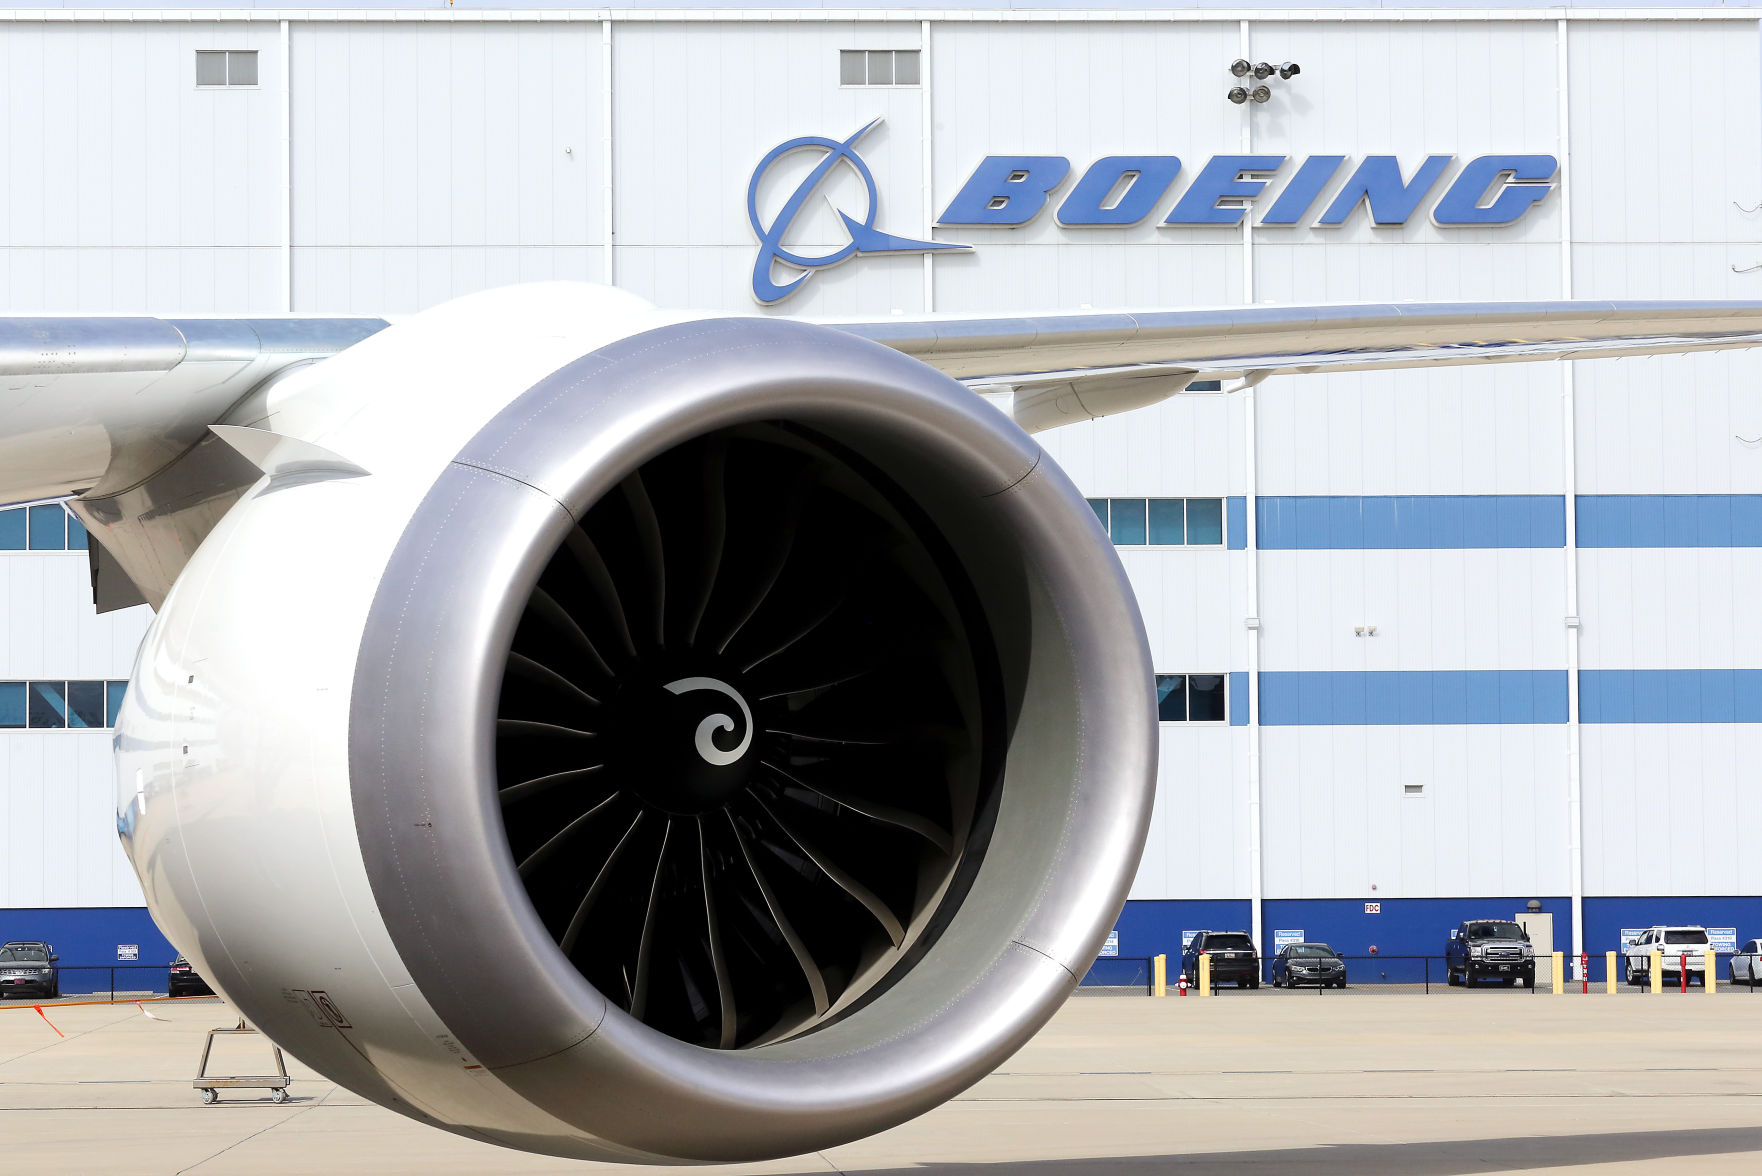 Revenue Estimates Analysis The Boeing Company (BA)